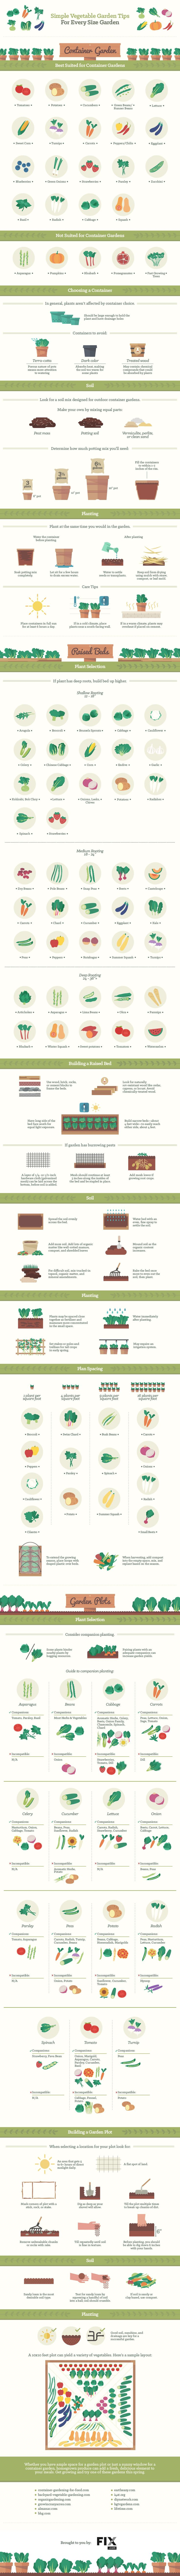 You don't need acres of land to grow your own veggies! If you have a sunny spot in your home, you can have a vegetable garden! Learn simple vegetable garden tips for every size garden! #veggies #gardening #vegetablegarden